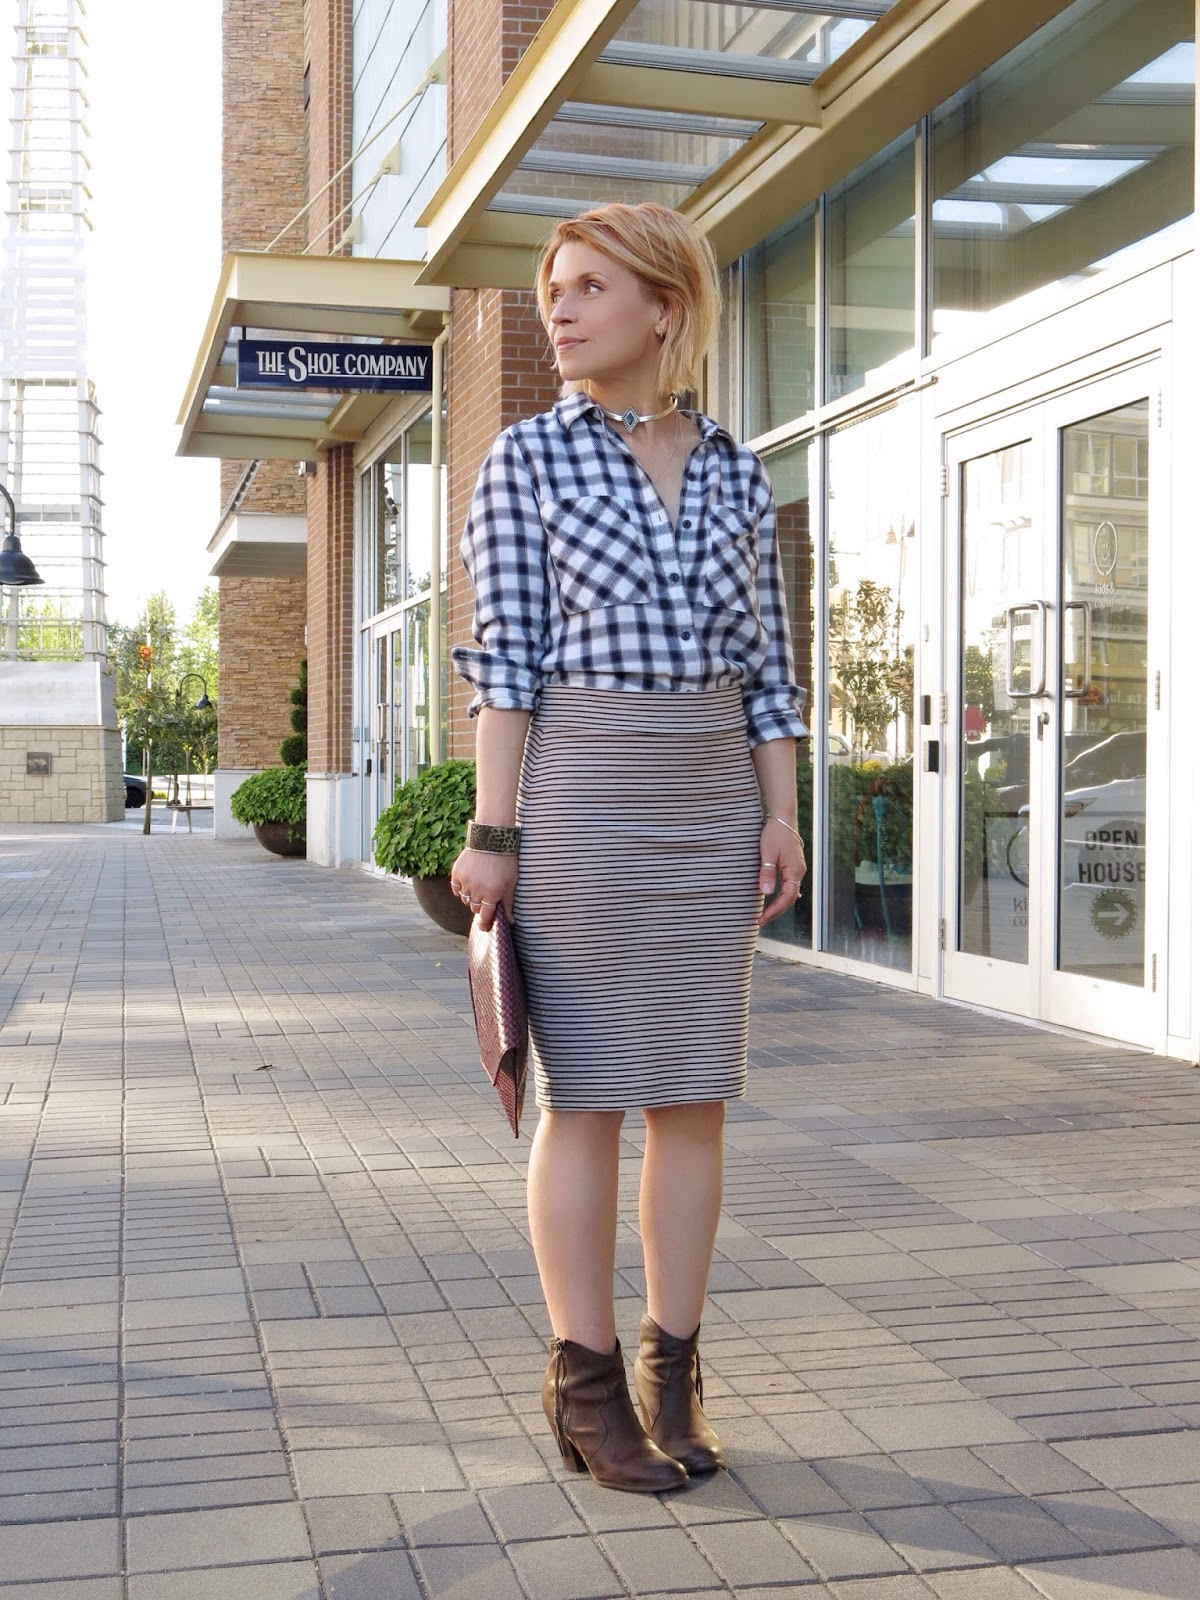 Plaid Skirts Channel some serious throwback vibes, the iconic checkered skirt is having a serious moment right now. To work the look authentically, pair your tartan mini skirt with a coordinating, oversized blazer jacket, cute tee and a pair of over the knee boots for a .